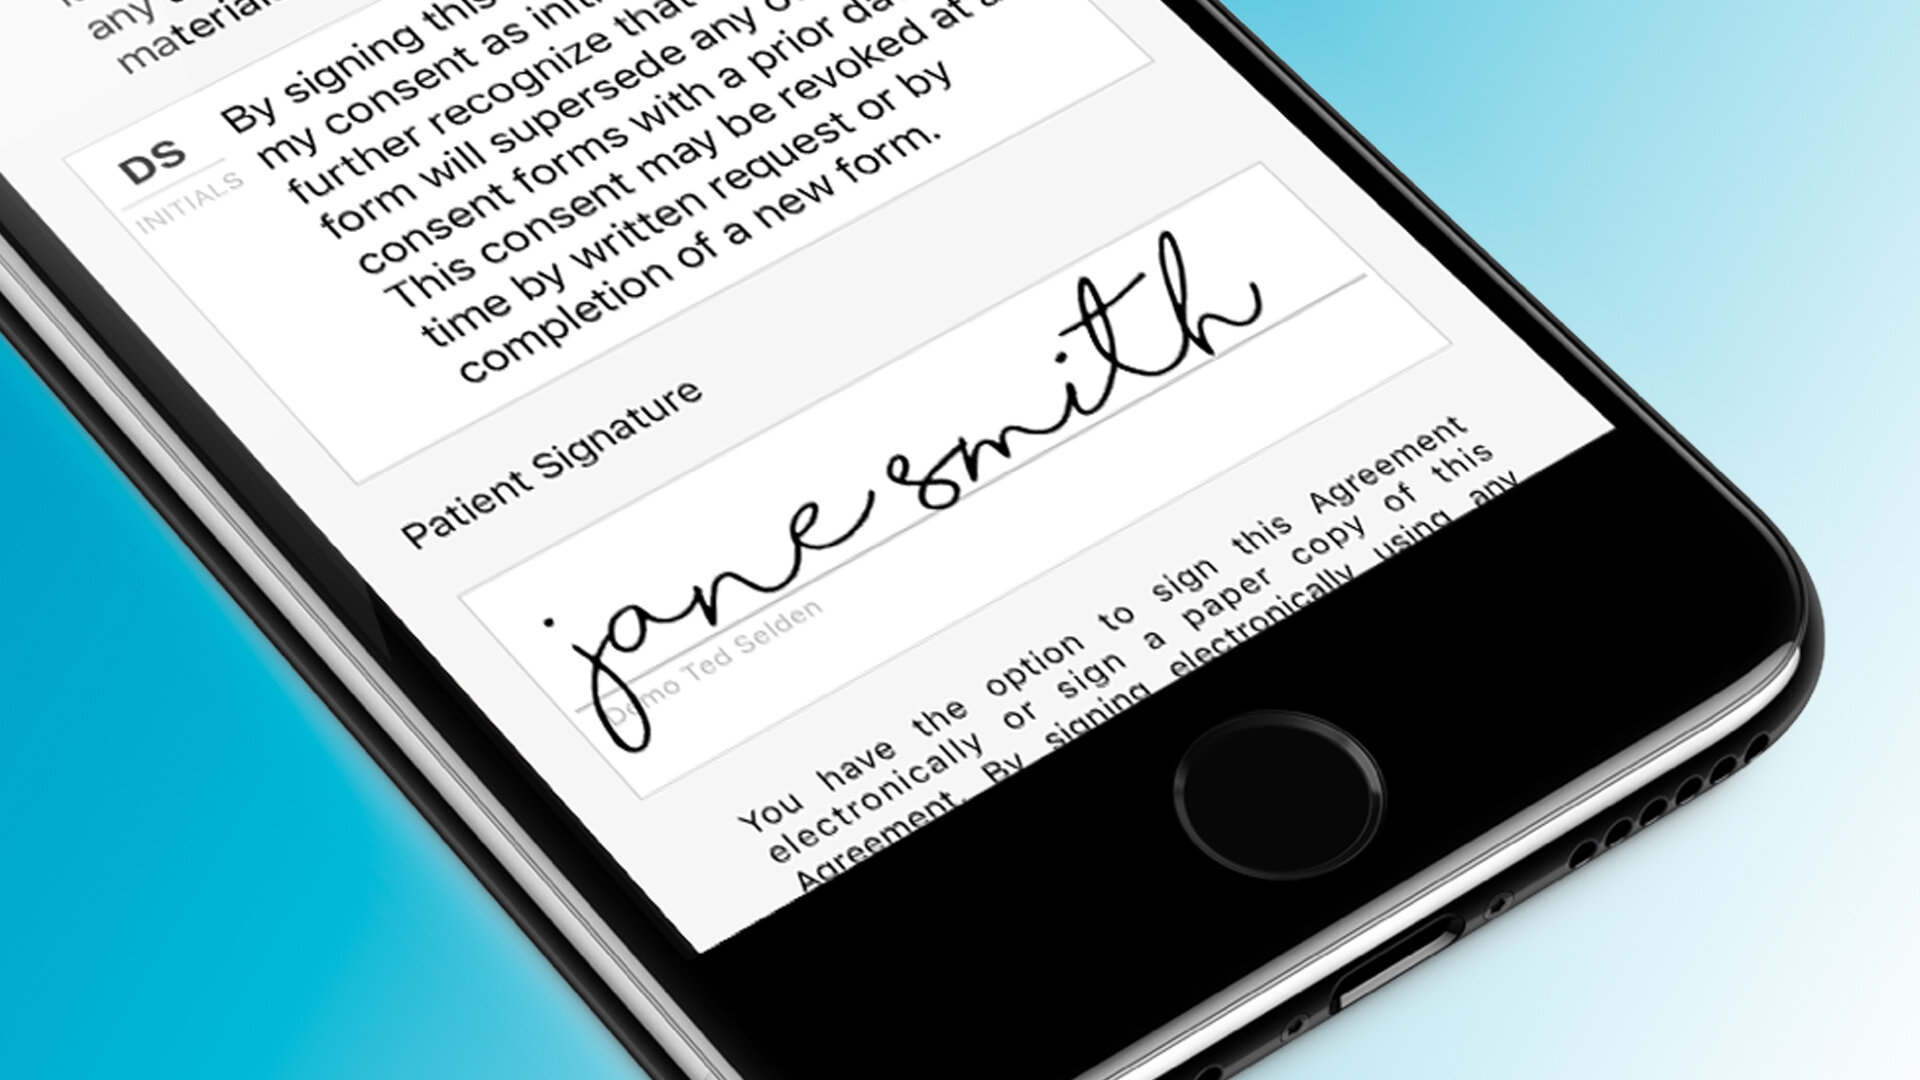 Consents & Document Mangement - Consents can be signed in office or at home within TouchMD. Patients can use their finger and sign directly on an iPad or on their phone. Now, the biggest questions is: what will you do with all of your free time?